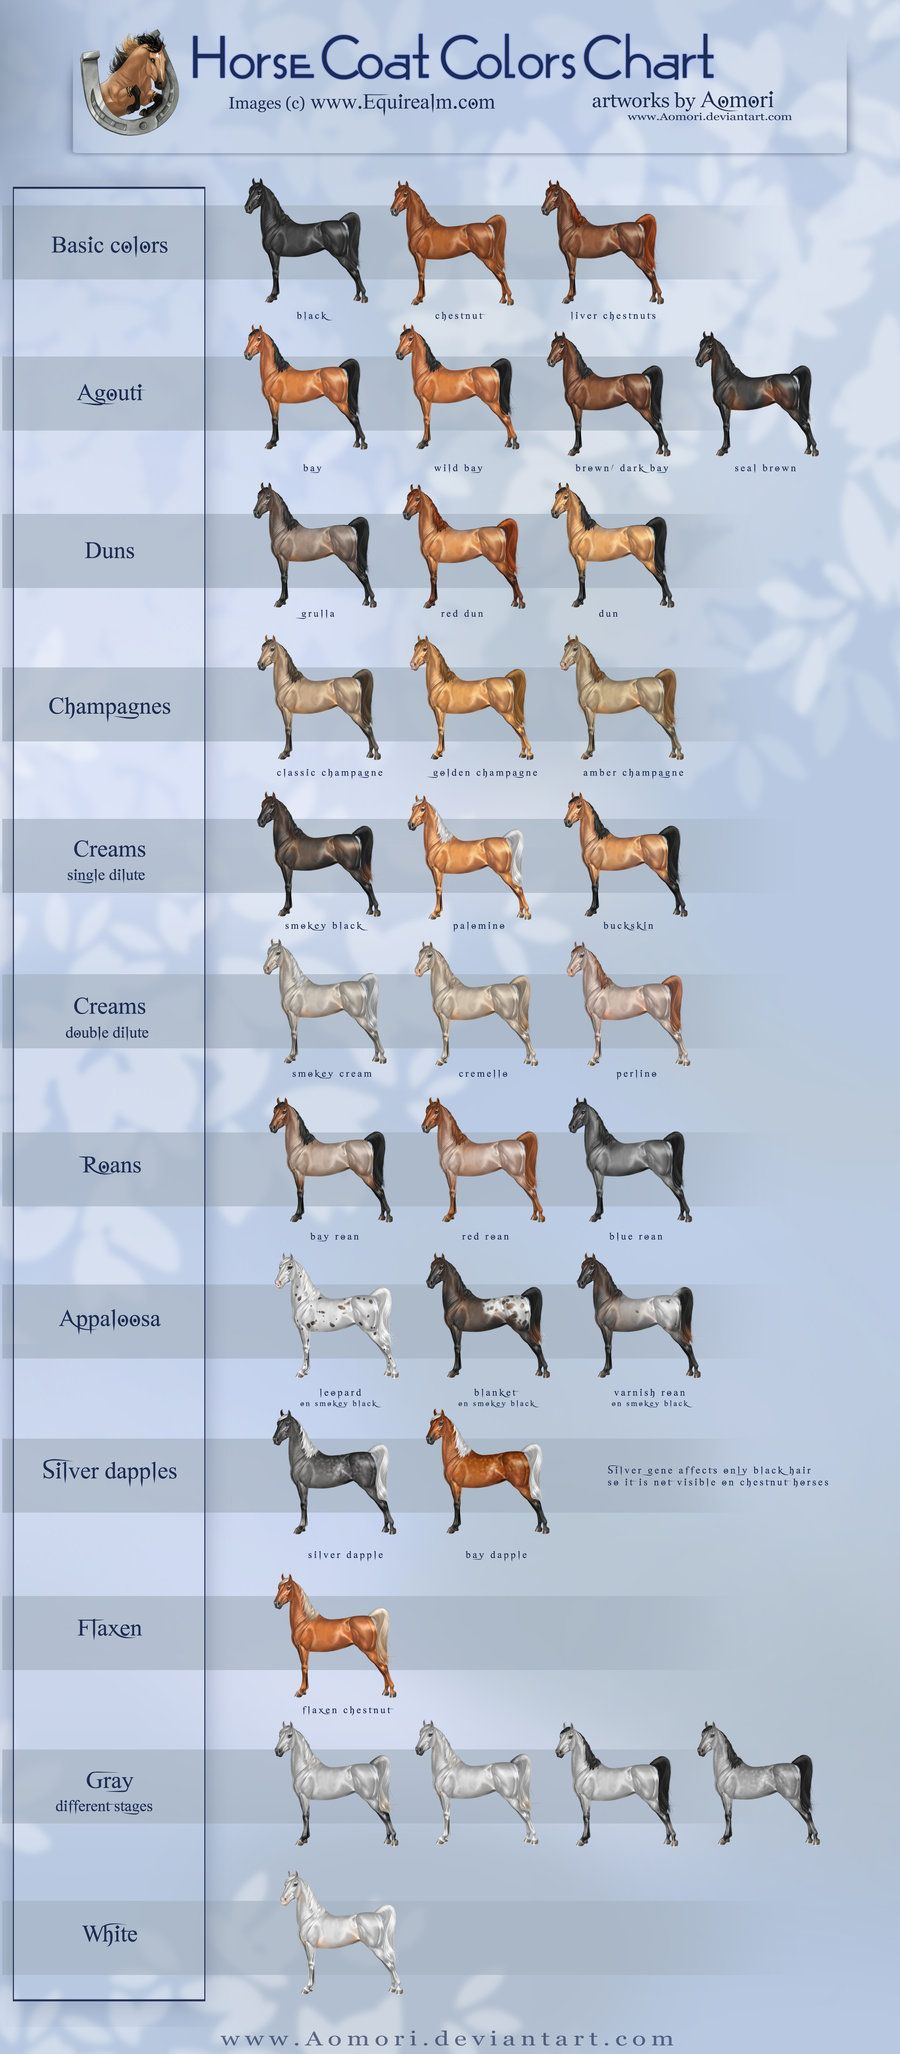 Equine coat color horse coat colors chart by aomori on equine coat color horse coat colors chart by aomori on deviantart nvjuhfo Choice Image